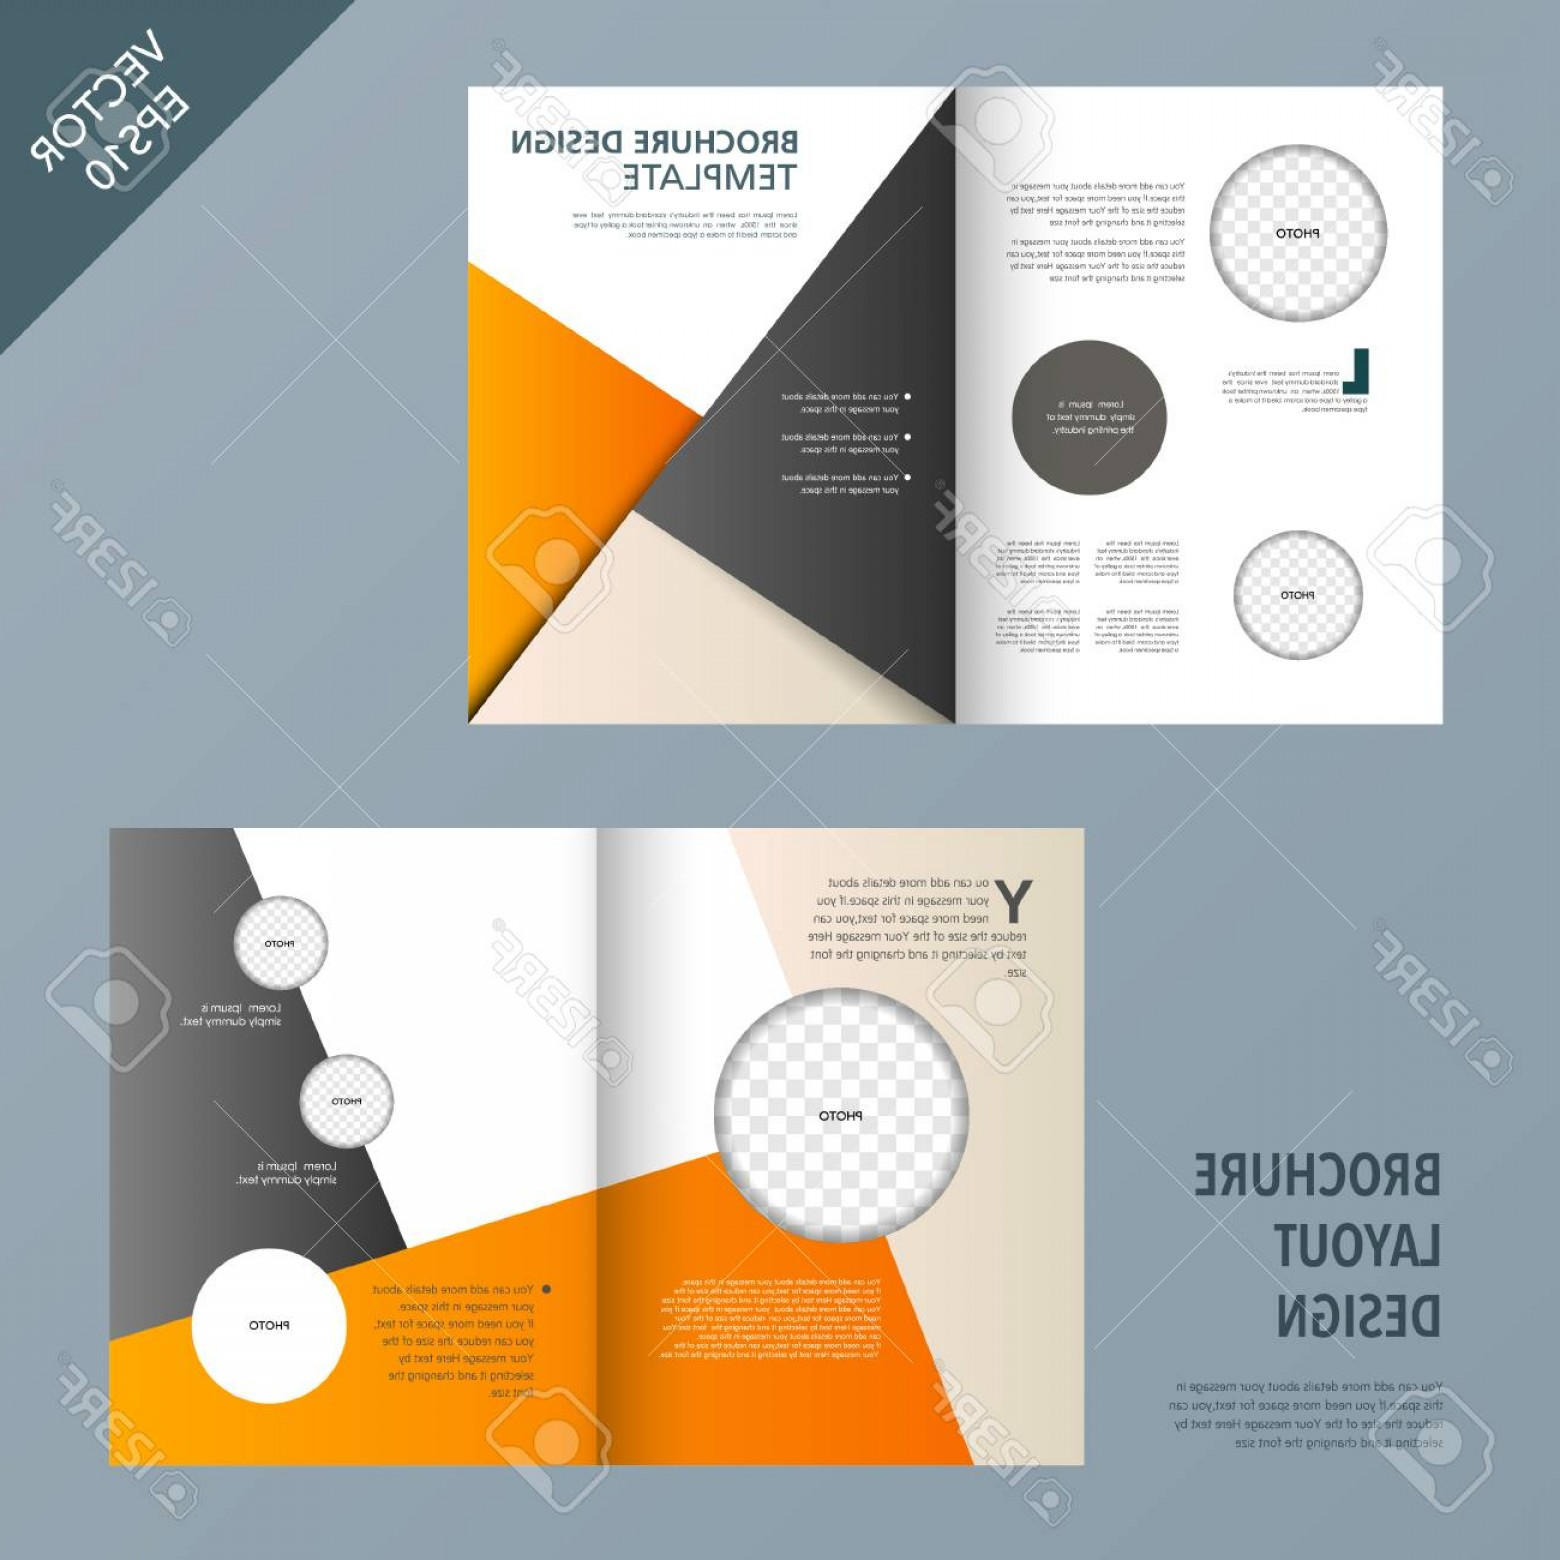 Pmon Vector: Photostock Vector Template Of Brochure Design With Spread Pages